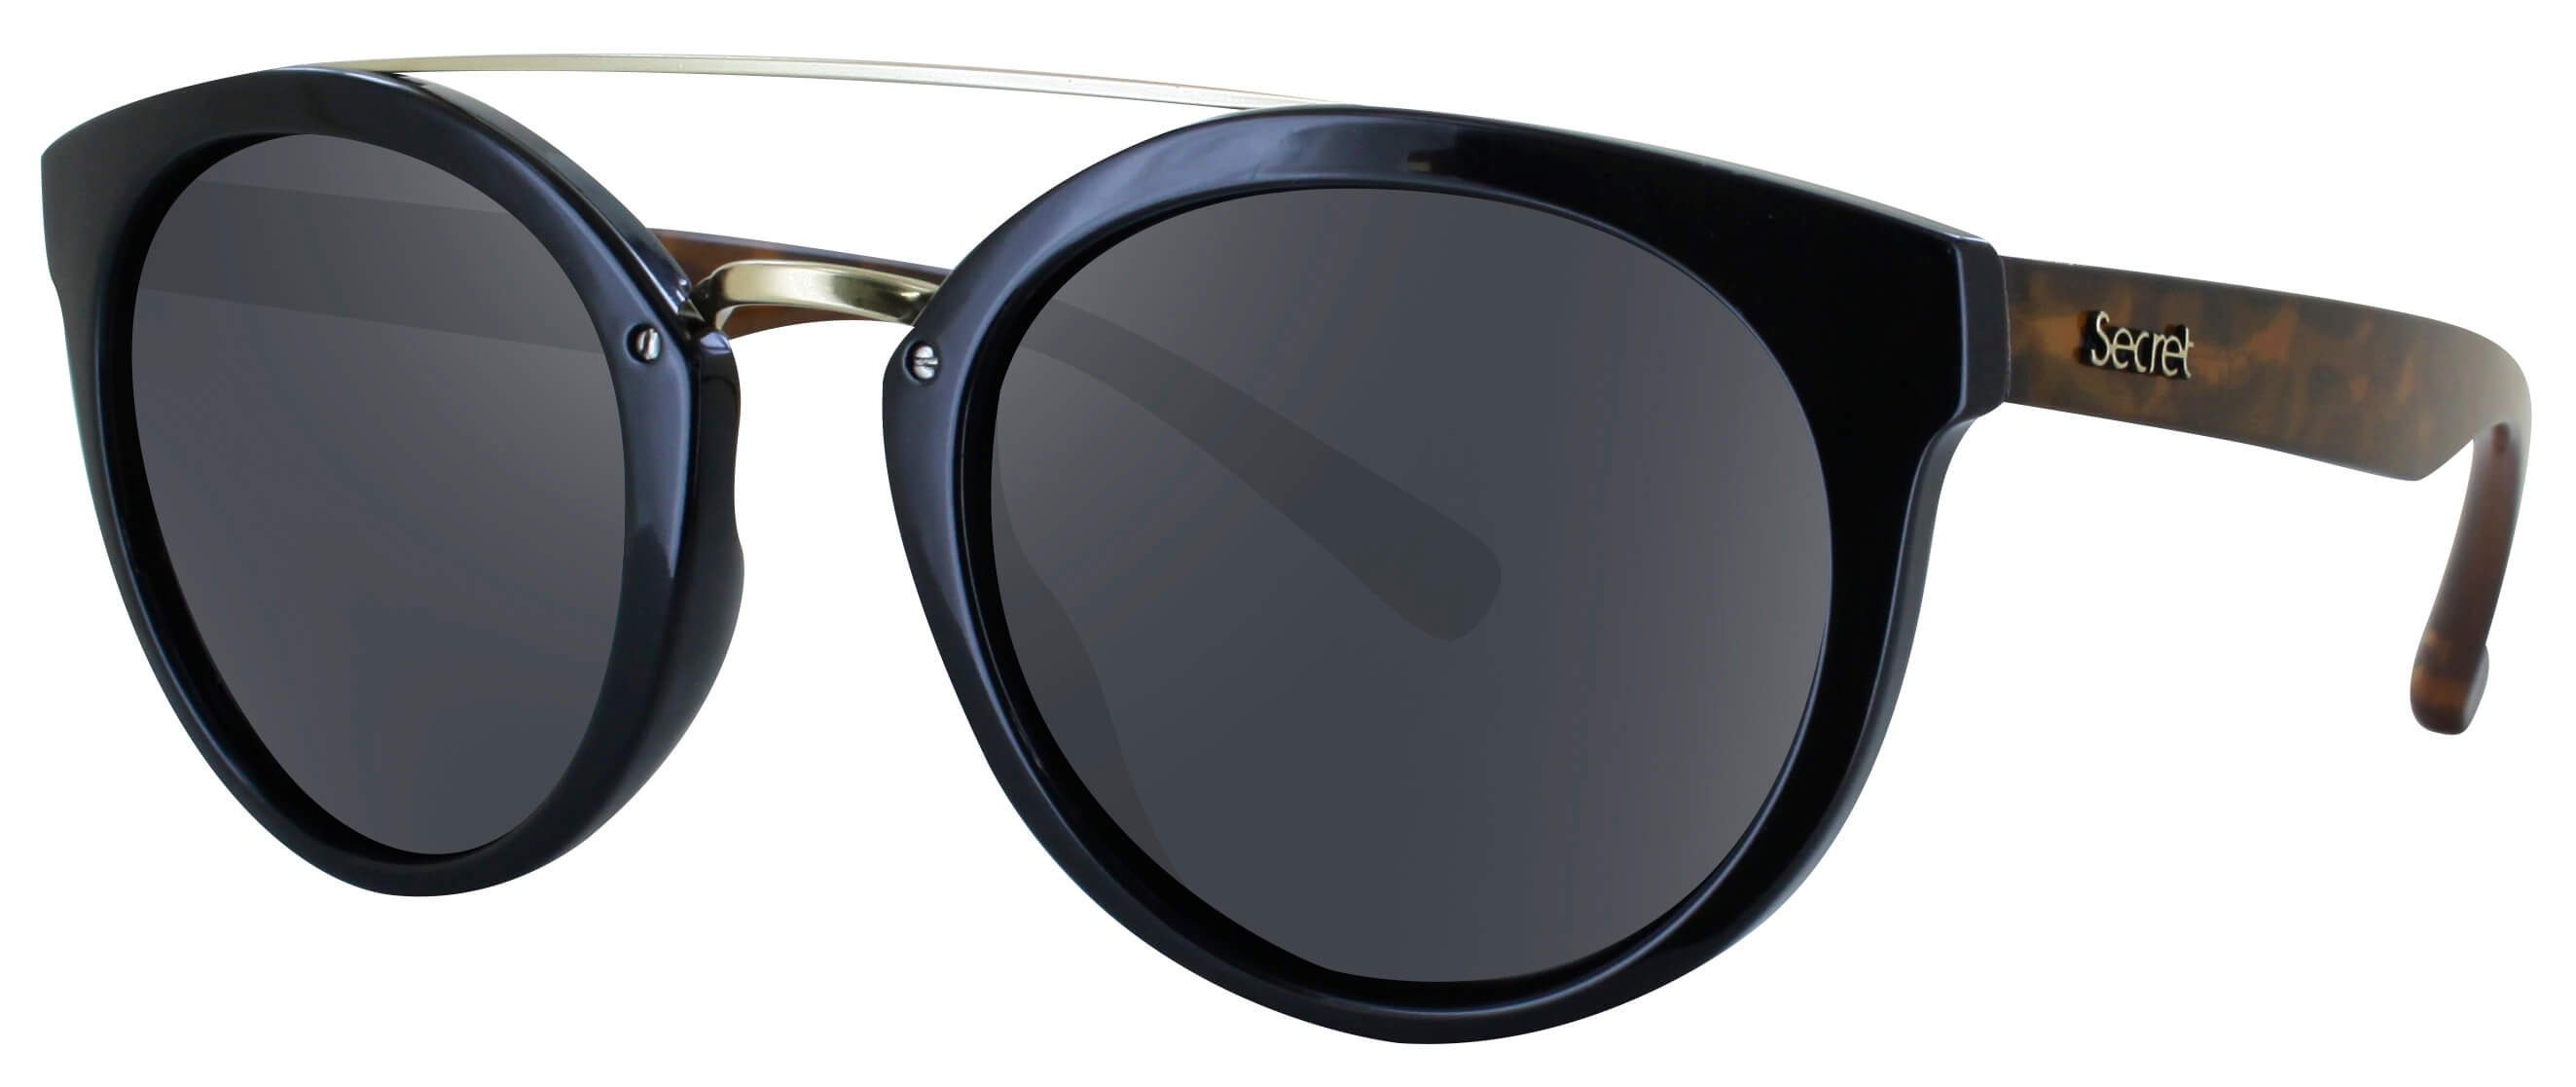 ÓC SECRET QUEENS G.BLACK/HAVANA TURTLE / POLARIZED GRAY